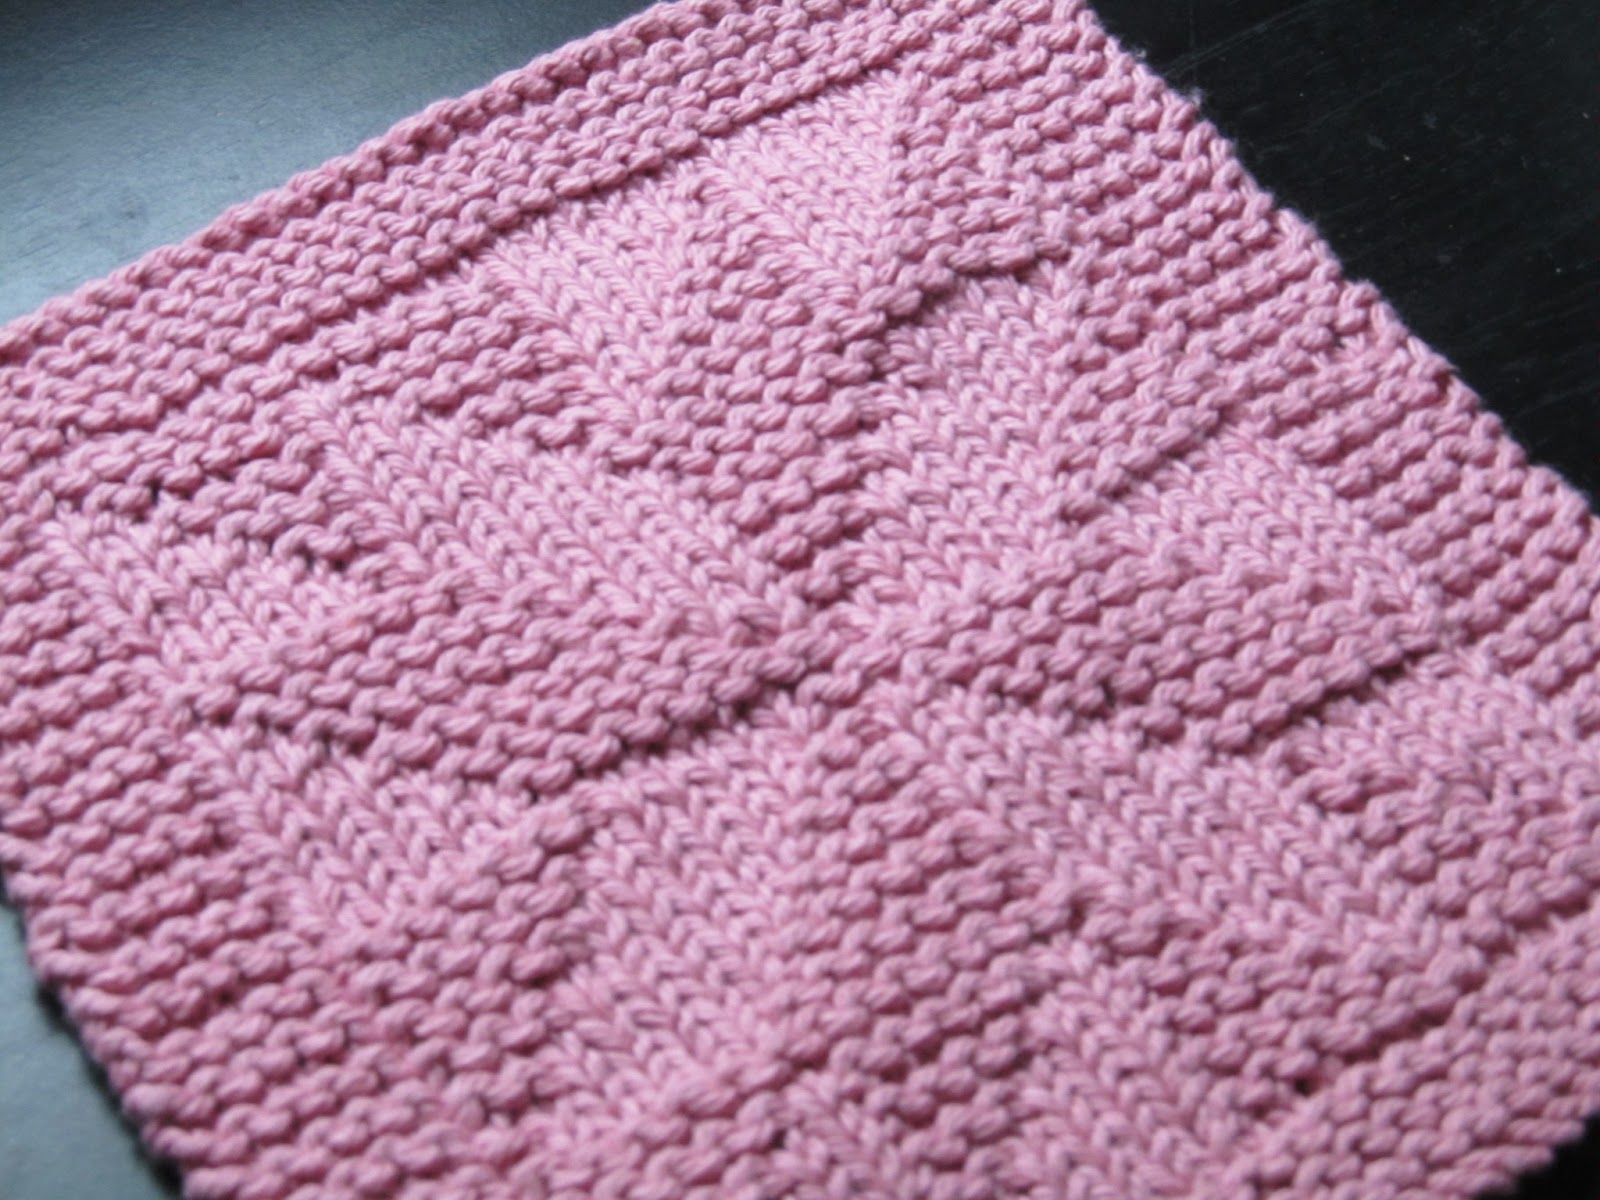 Knitting Crochet Patterns : Dishcloth knitting patterns with pictures free